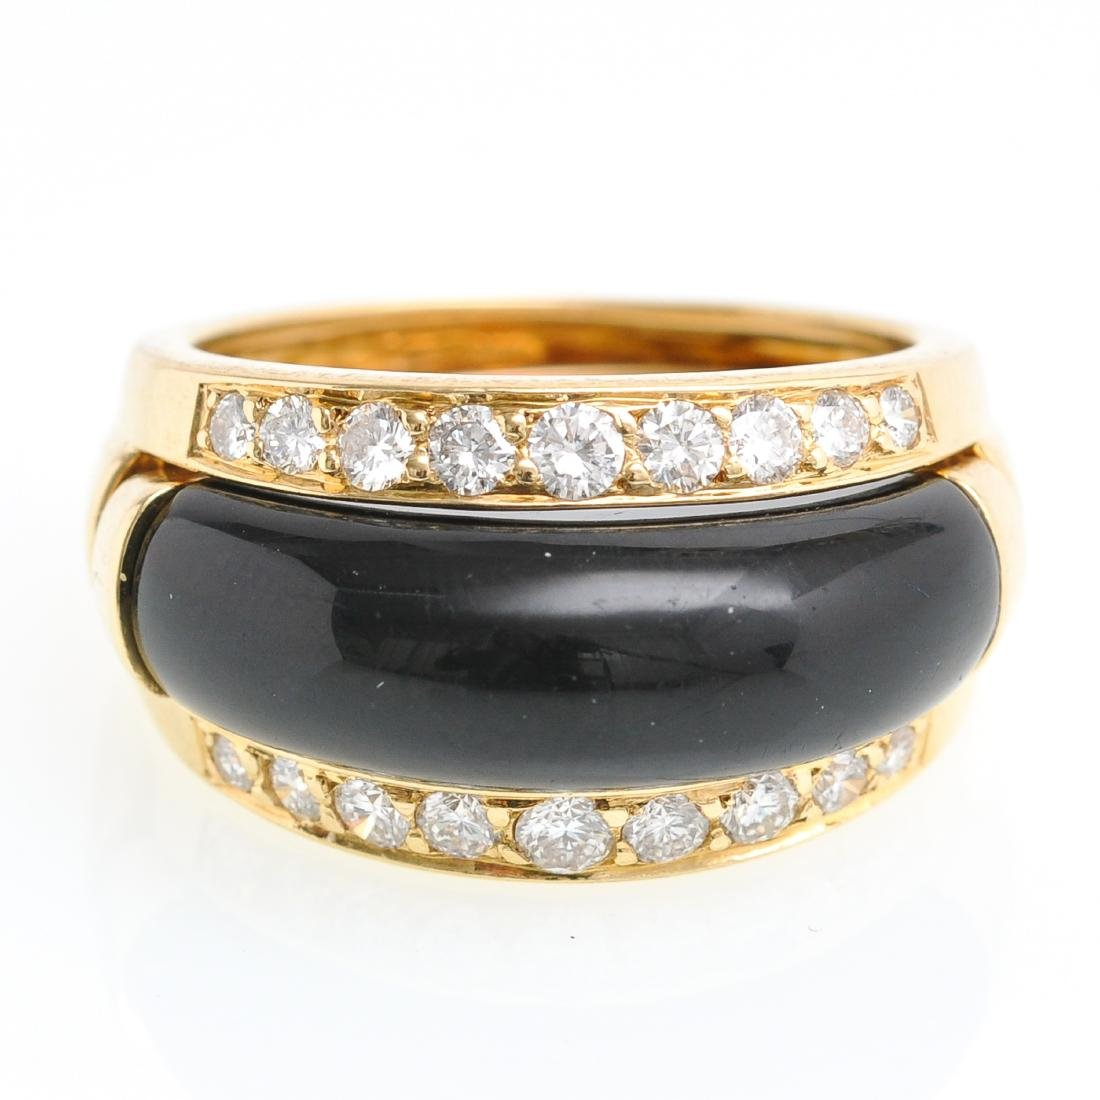 An 18KG Van Cleef & Arpels Onyx and Diamond Band